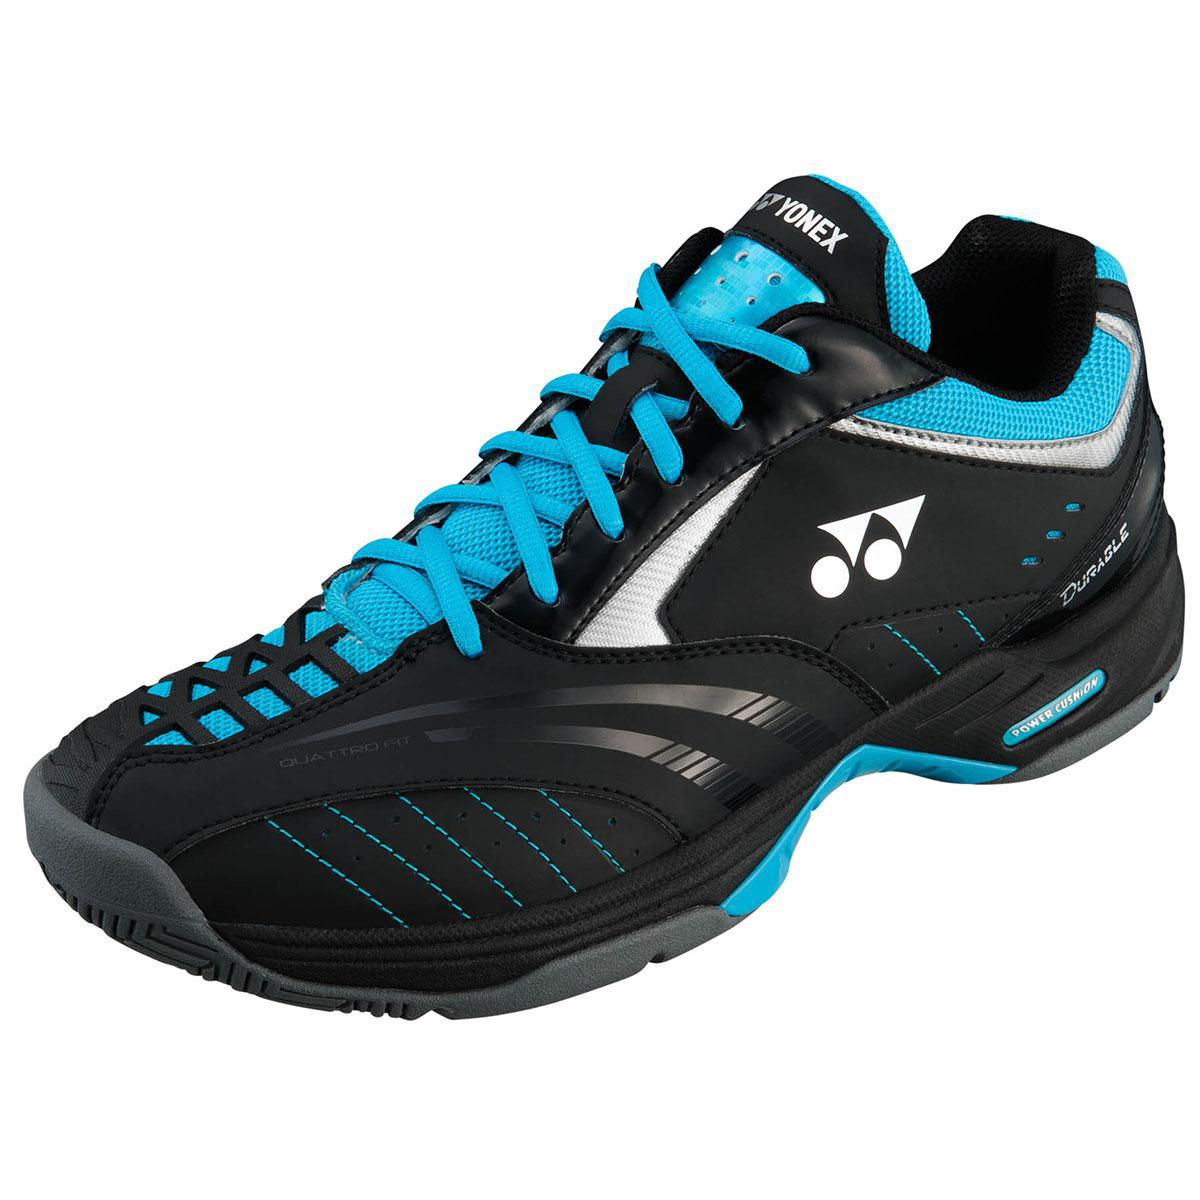 yonex mens sht durable 2 tennis shoes black sky blue